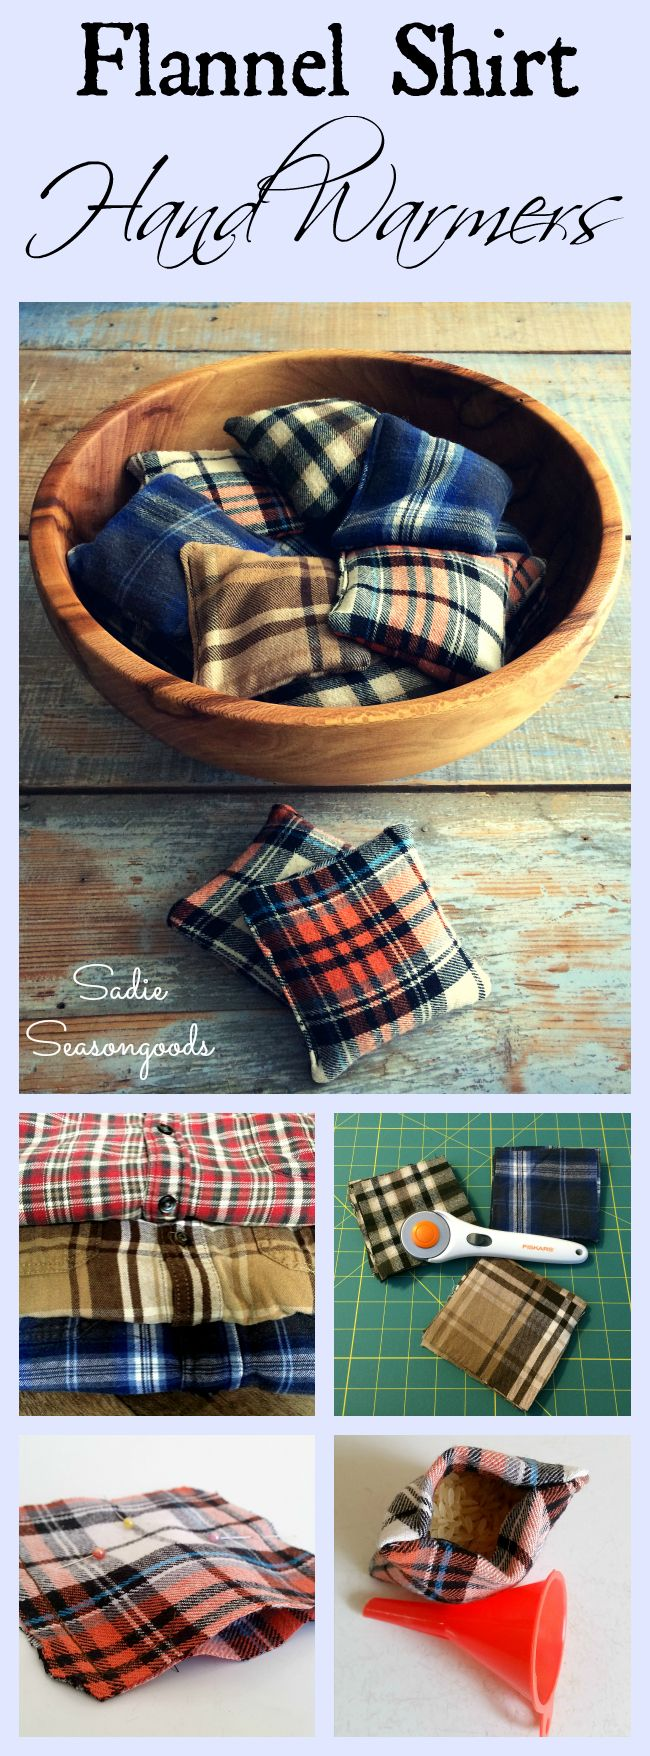 DIY flannel hand warmers using scraps that came from thrifted shirts! Such a simple, quick project- any leftover fabric scraps will do- and you fill them with rice! 25-30 seconds in the microwave and they get nice and toasty- perfect for taking the chill off of cold hands.